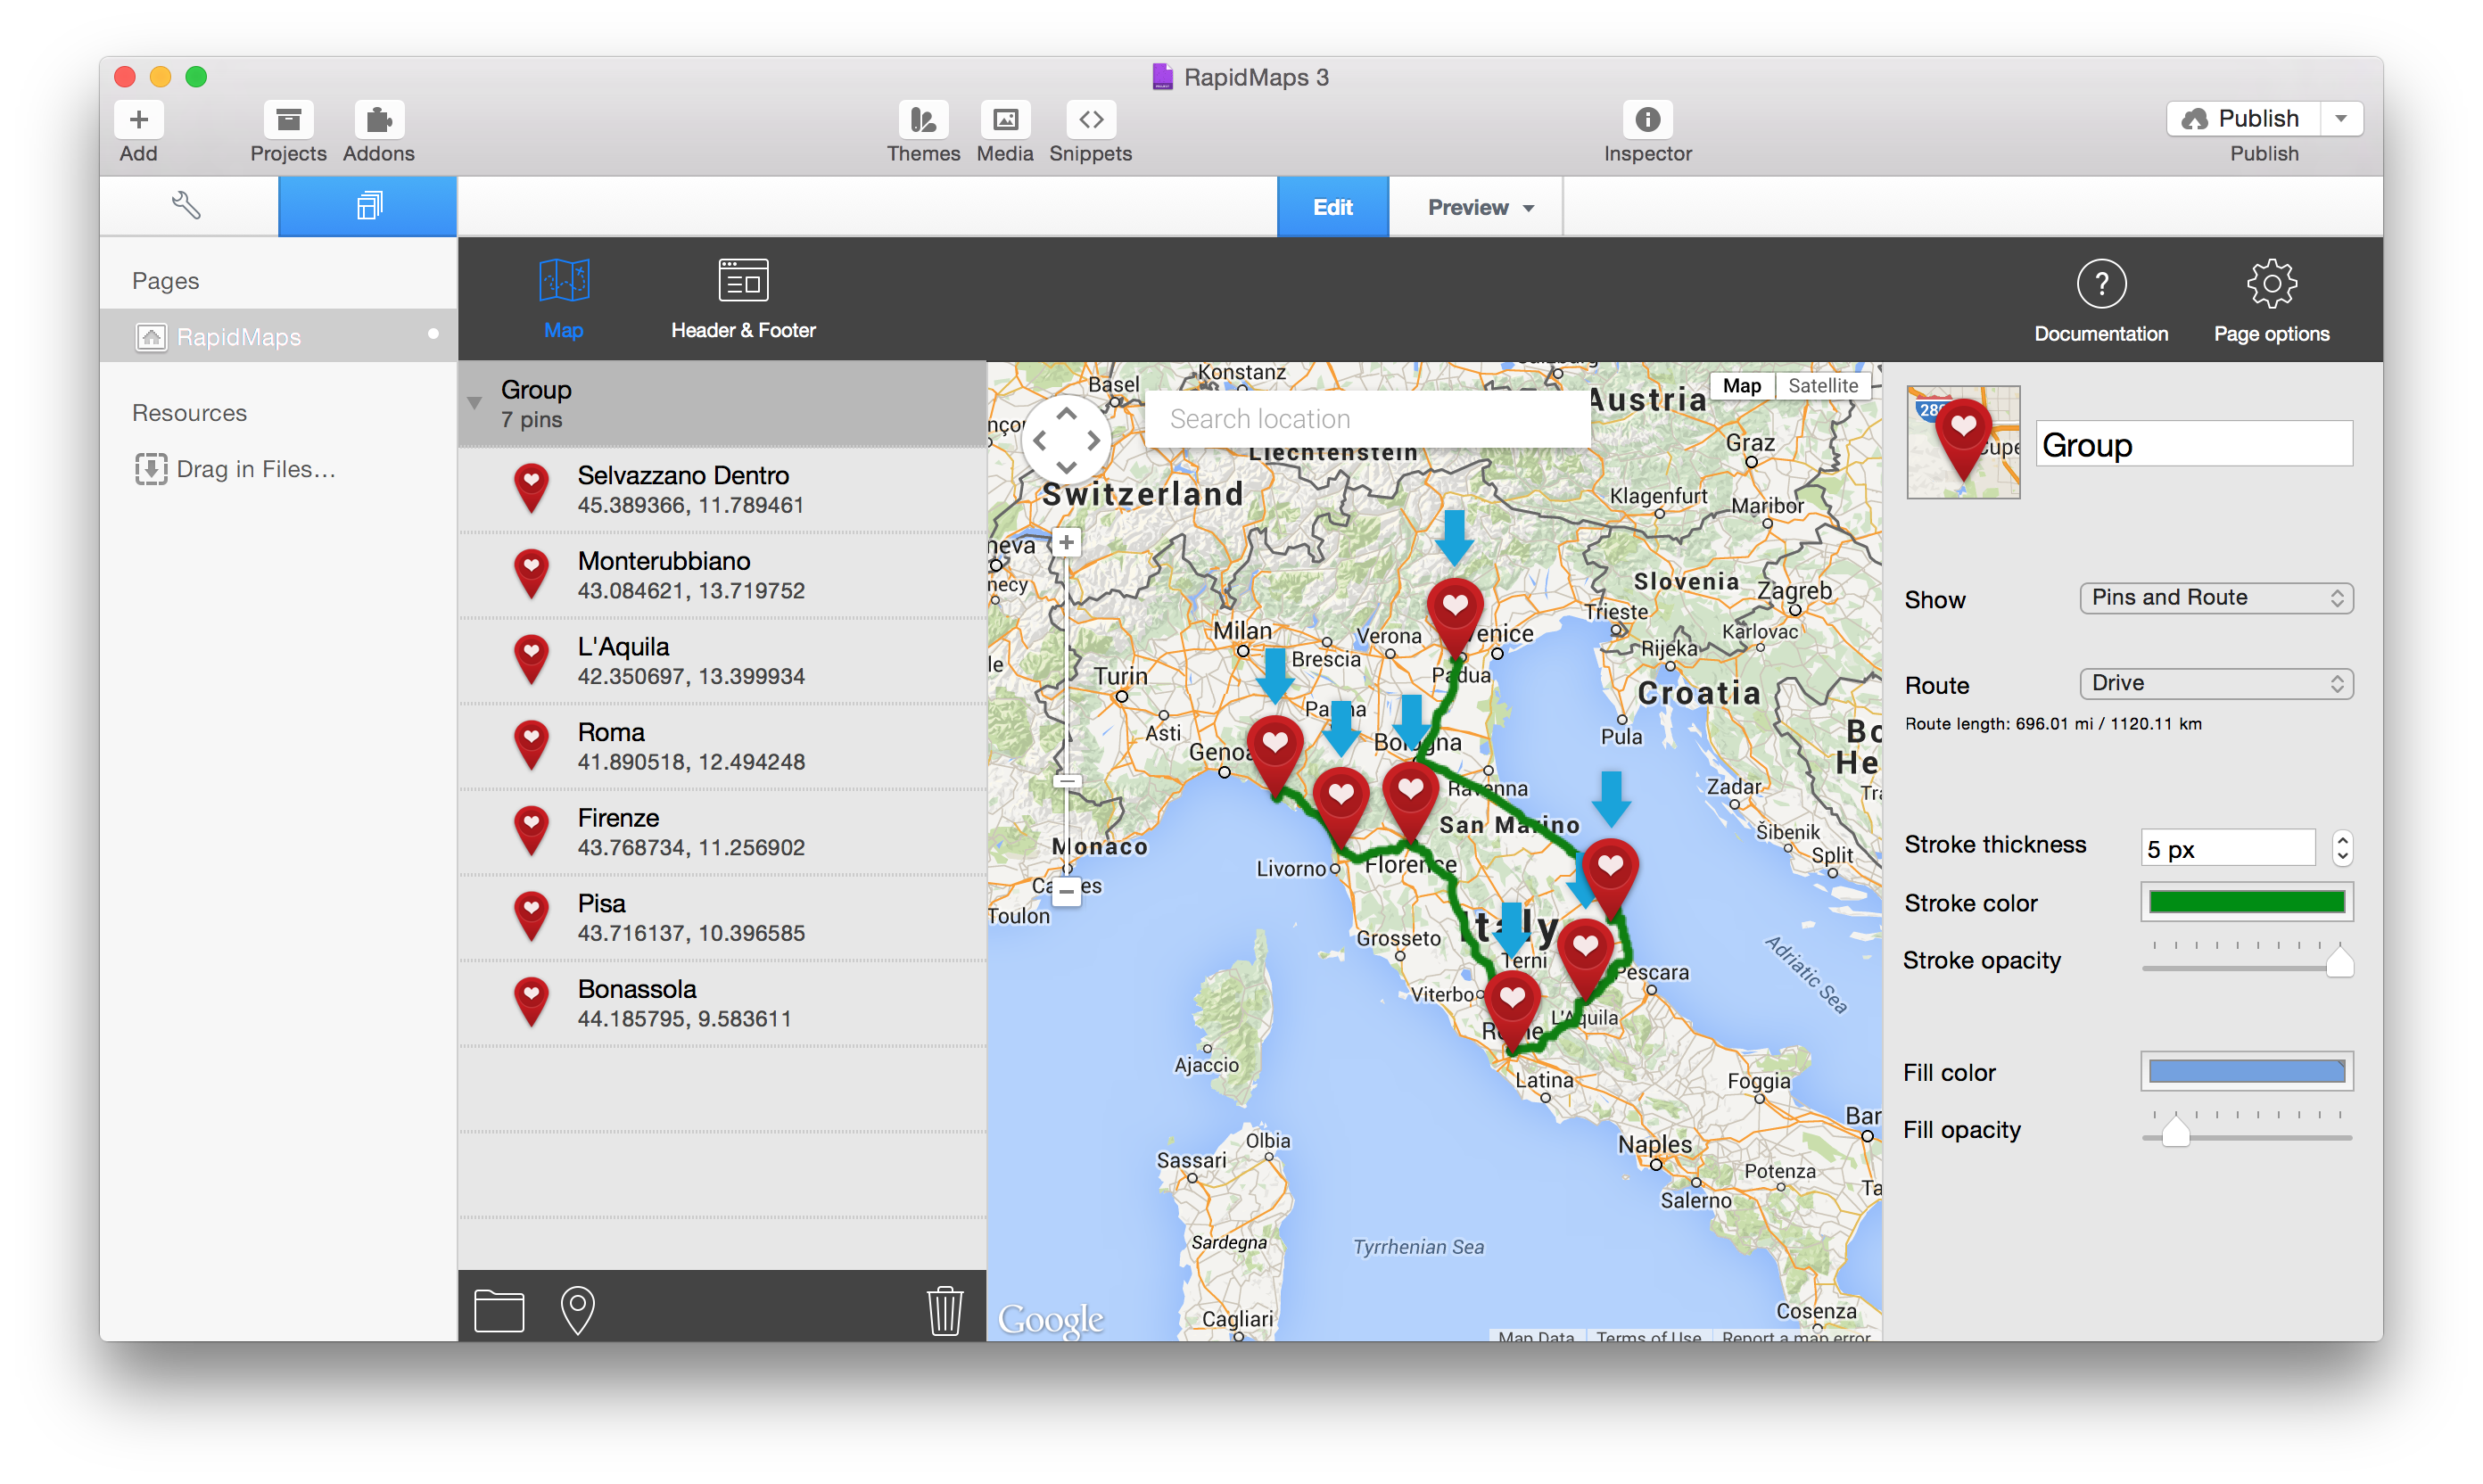 RapidMaps 3 Project - Honeymoon in Italy